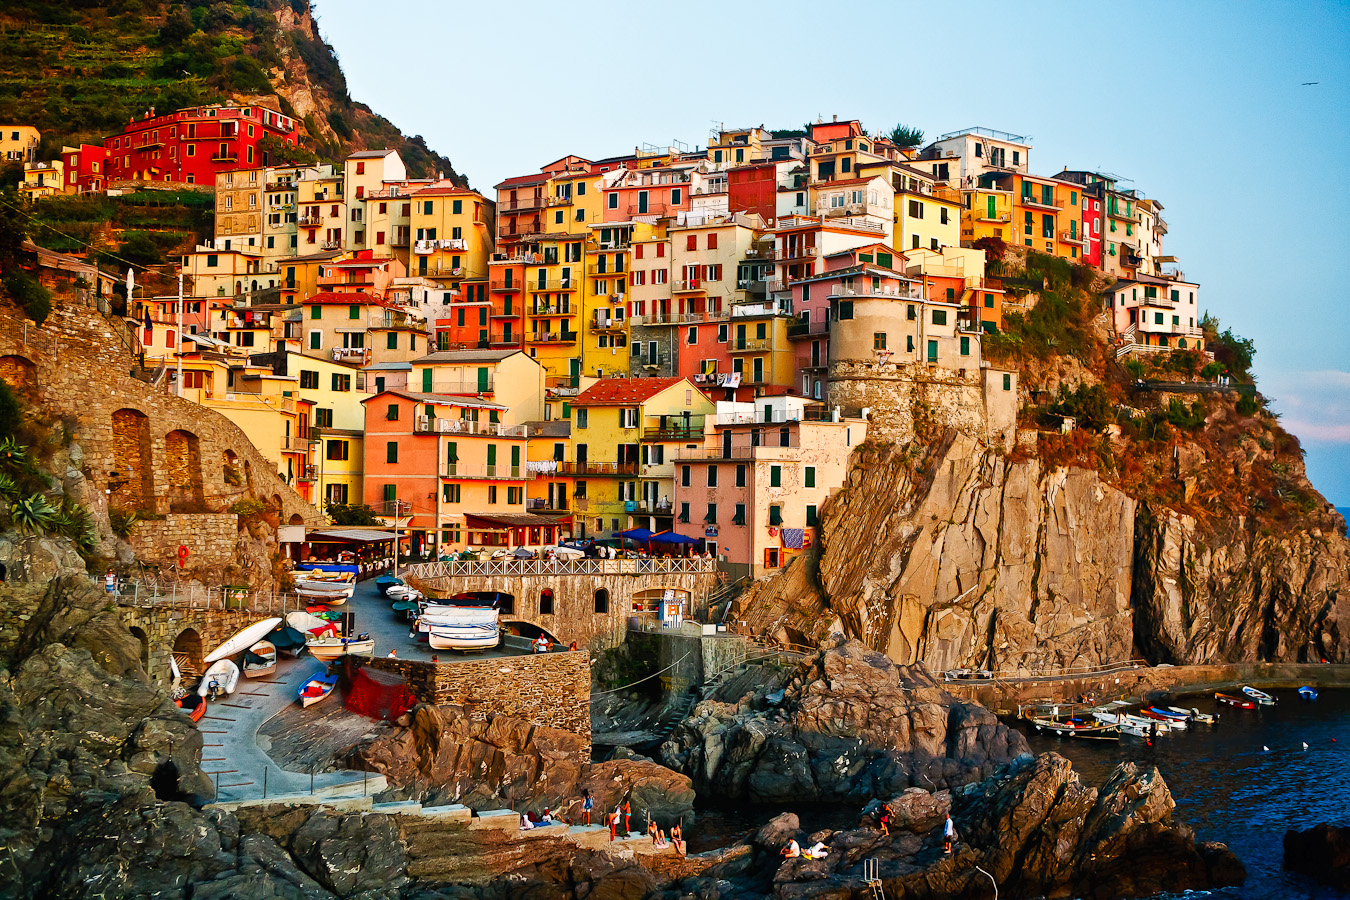 """This image is a different composition than the earlier production of a similar image titled """"Golden Hour at Manarola"""". The frame is almost the same but the photo was taken later in the day and post processed to create a somewhat somber mood to characterize the retreat from the sea. Posterization was added to create a painterly look consistent with other Cinque Terre images intended to compose a related collection of fine art prints. Processed by Sam Dobrow 11-26-2011"""